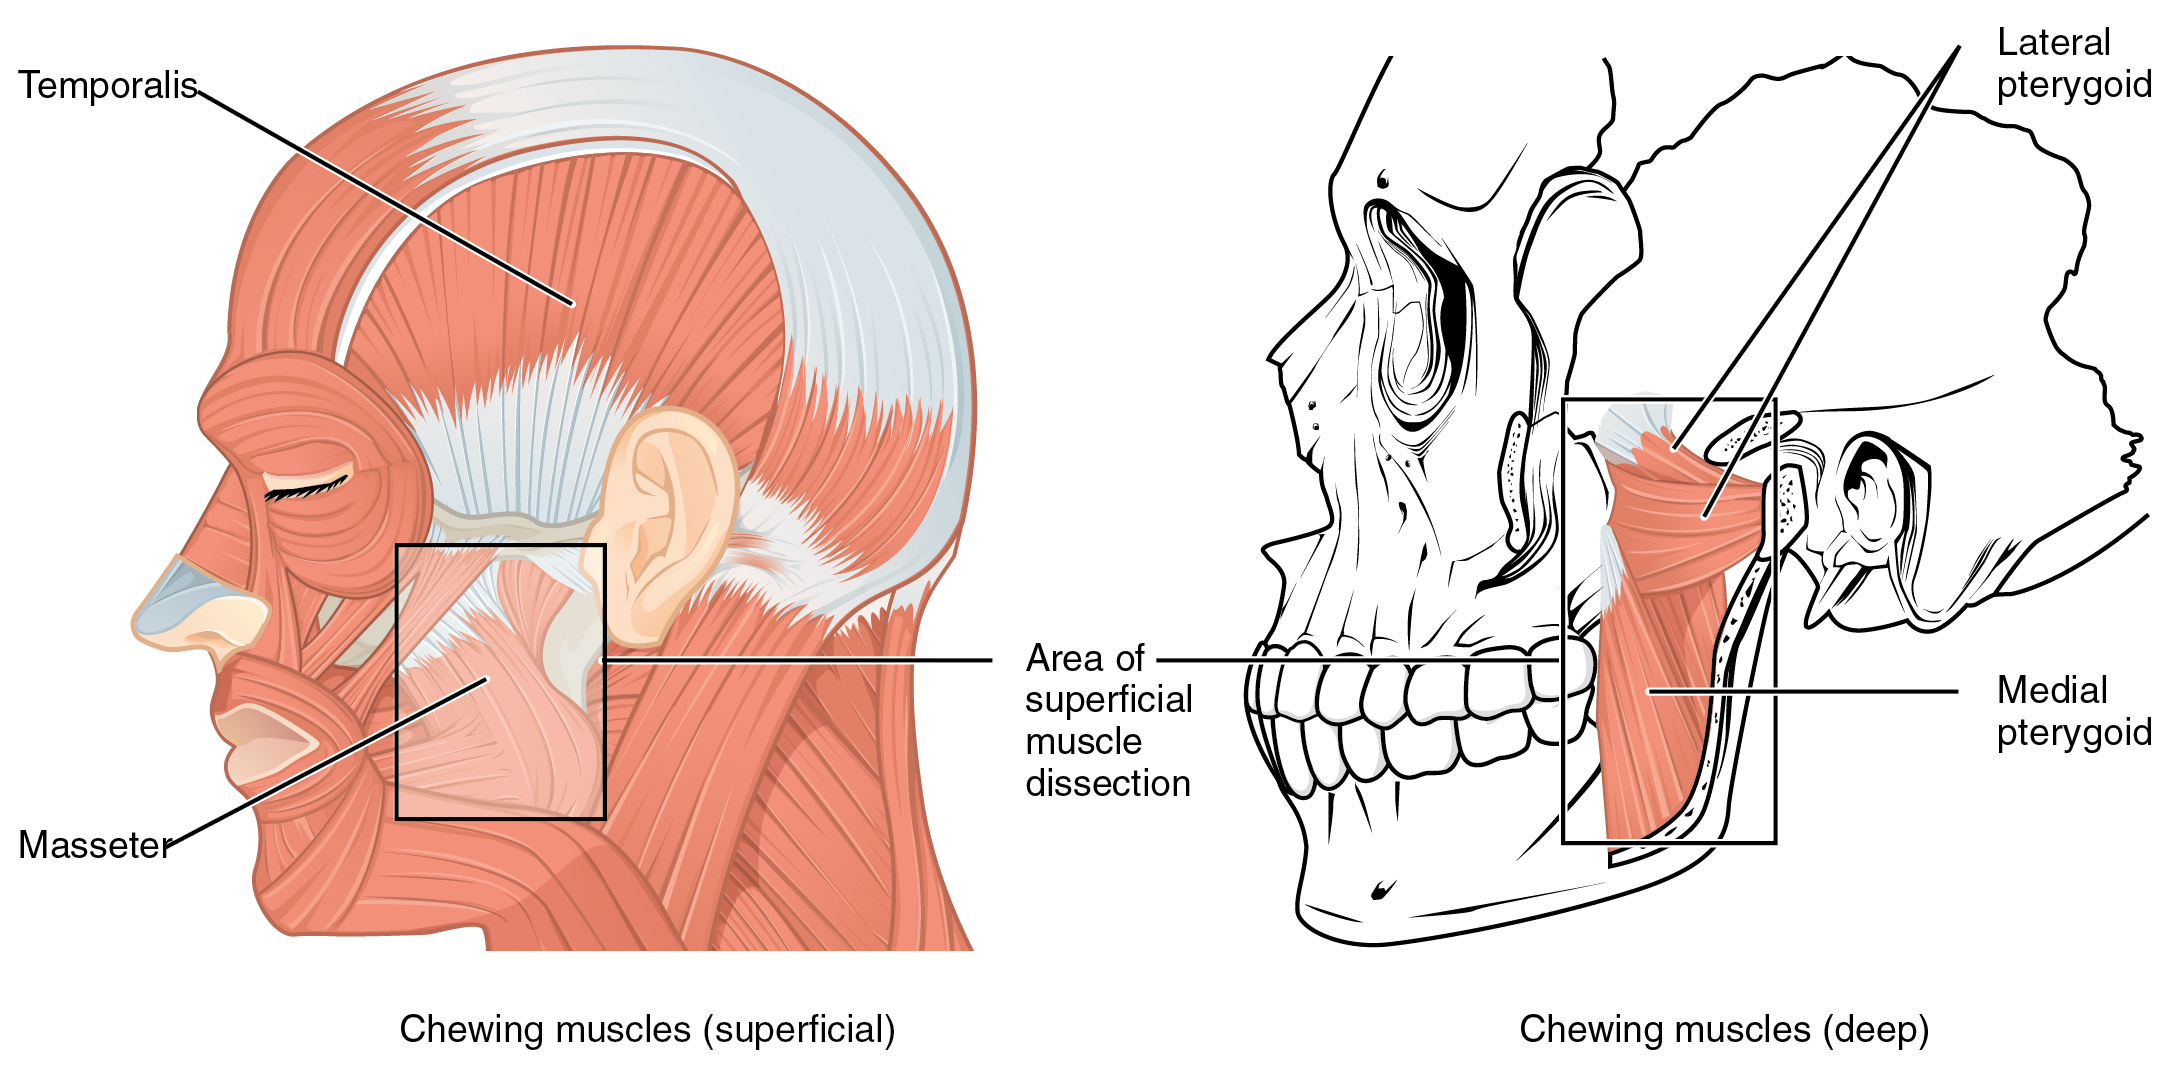 Axial Muscles of the Head, Neck, and Back – Anatomy & Physiology